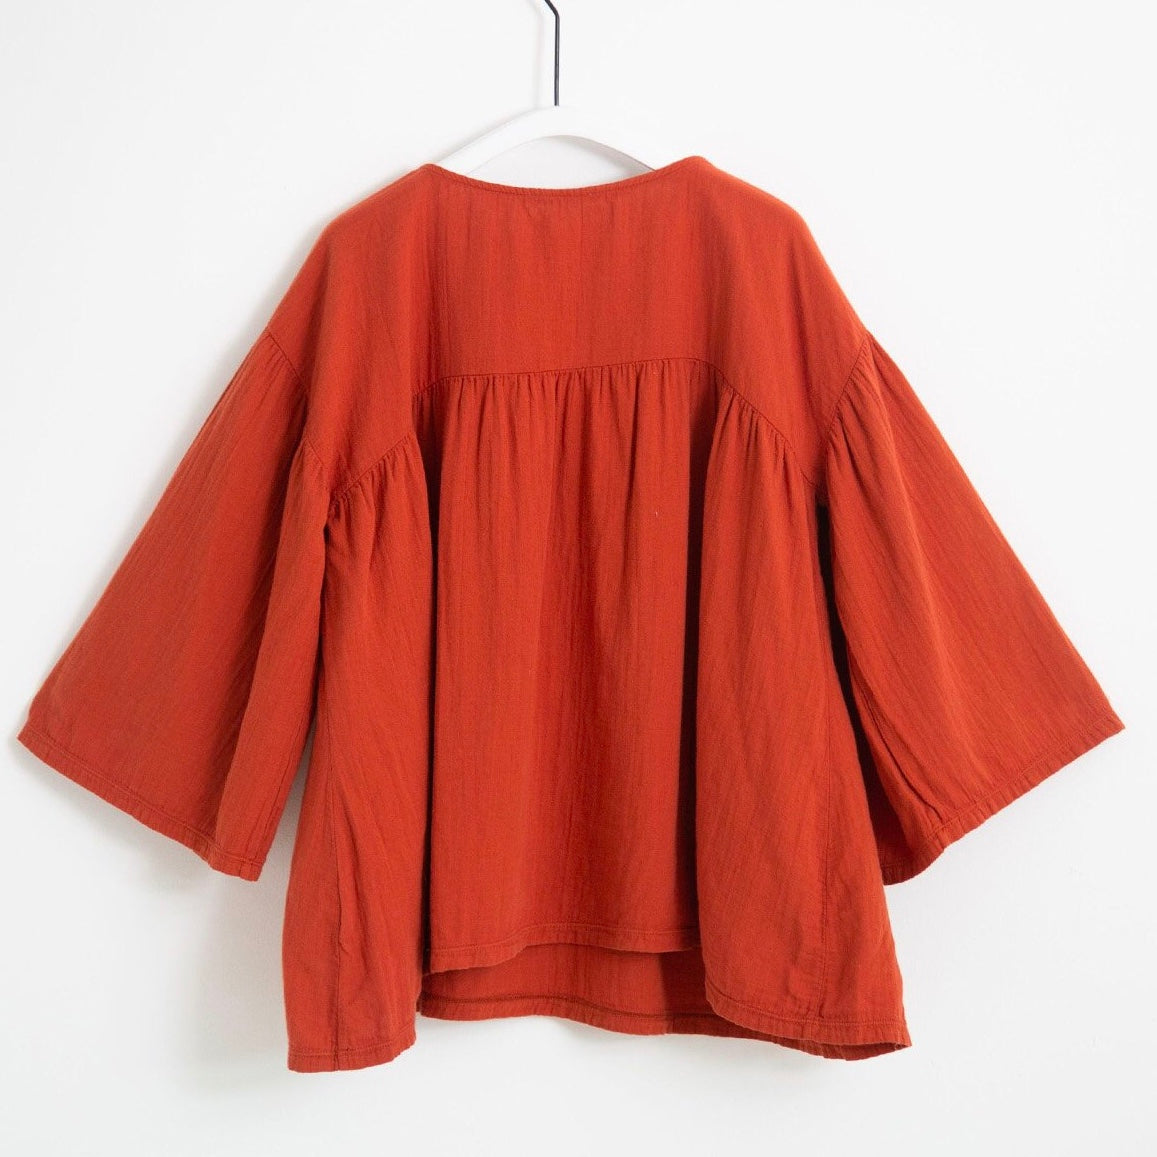 Beaumont Organic Carlotte Top - Cinnamon